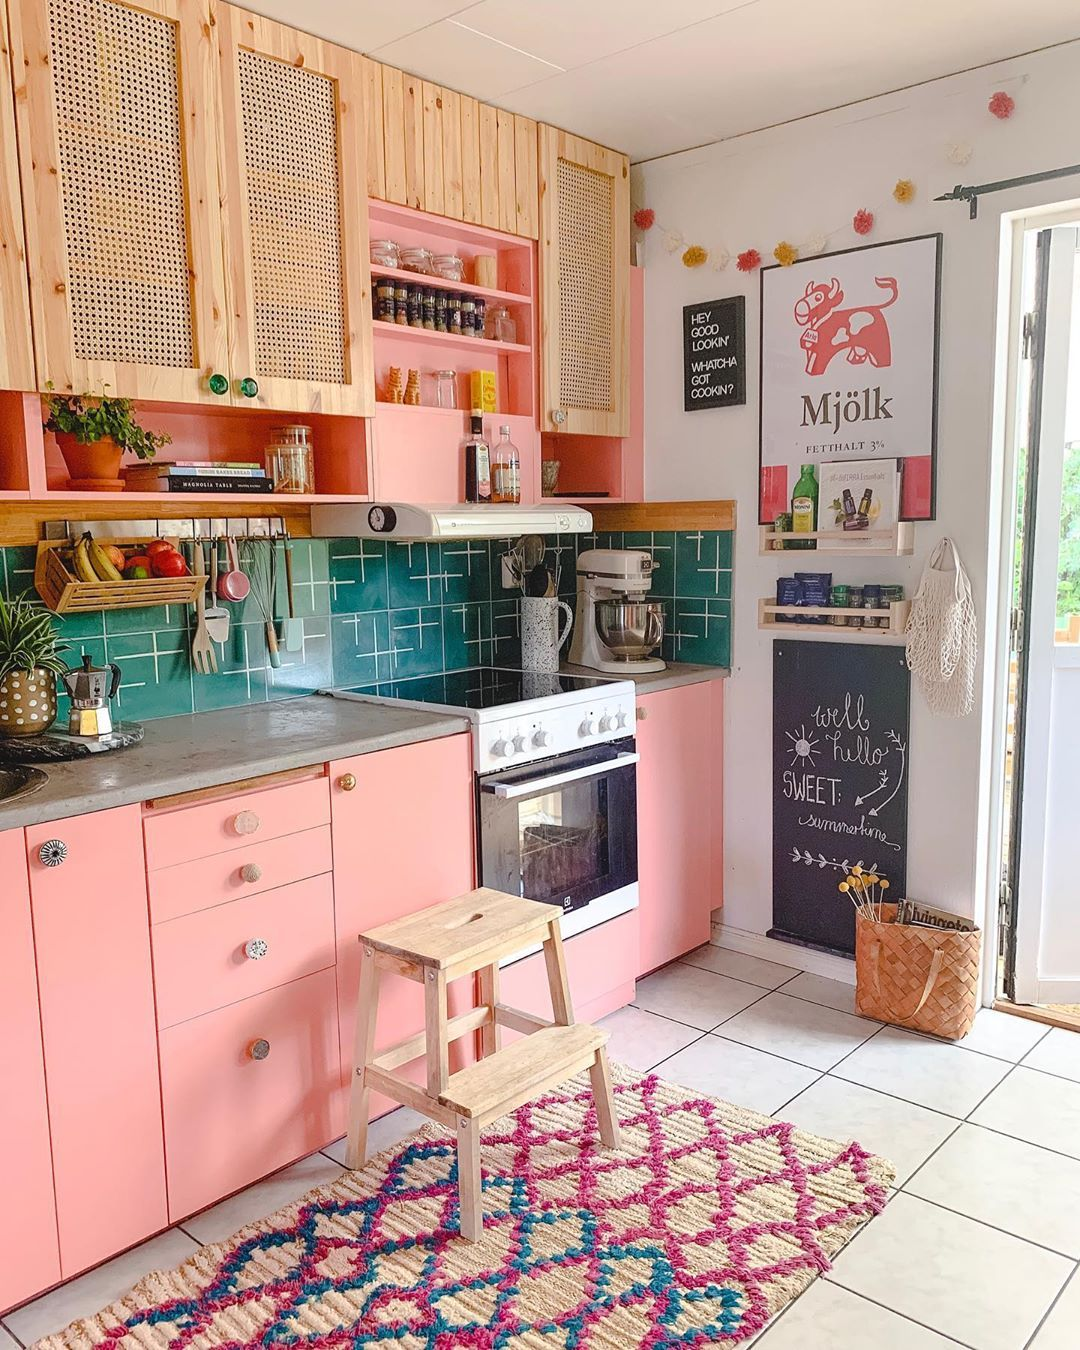 8 Colorful Kitchen Cabinets – Flea Market Finds: Home and Garden Decorating Ideas by Expert Interior Decorators